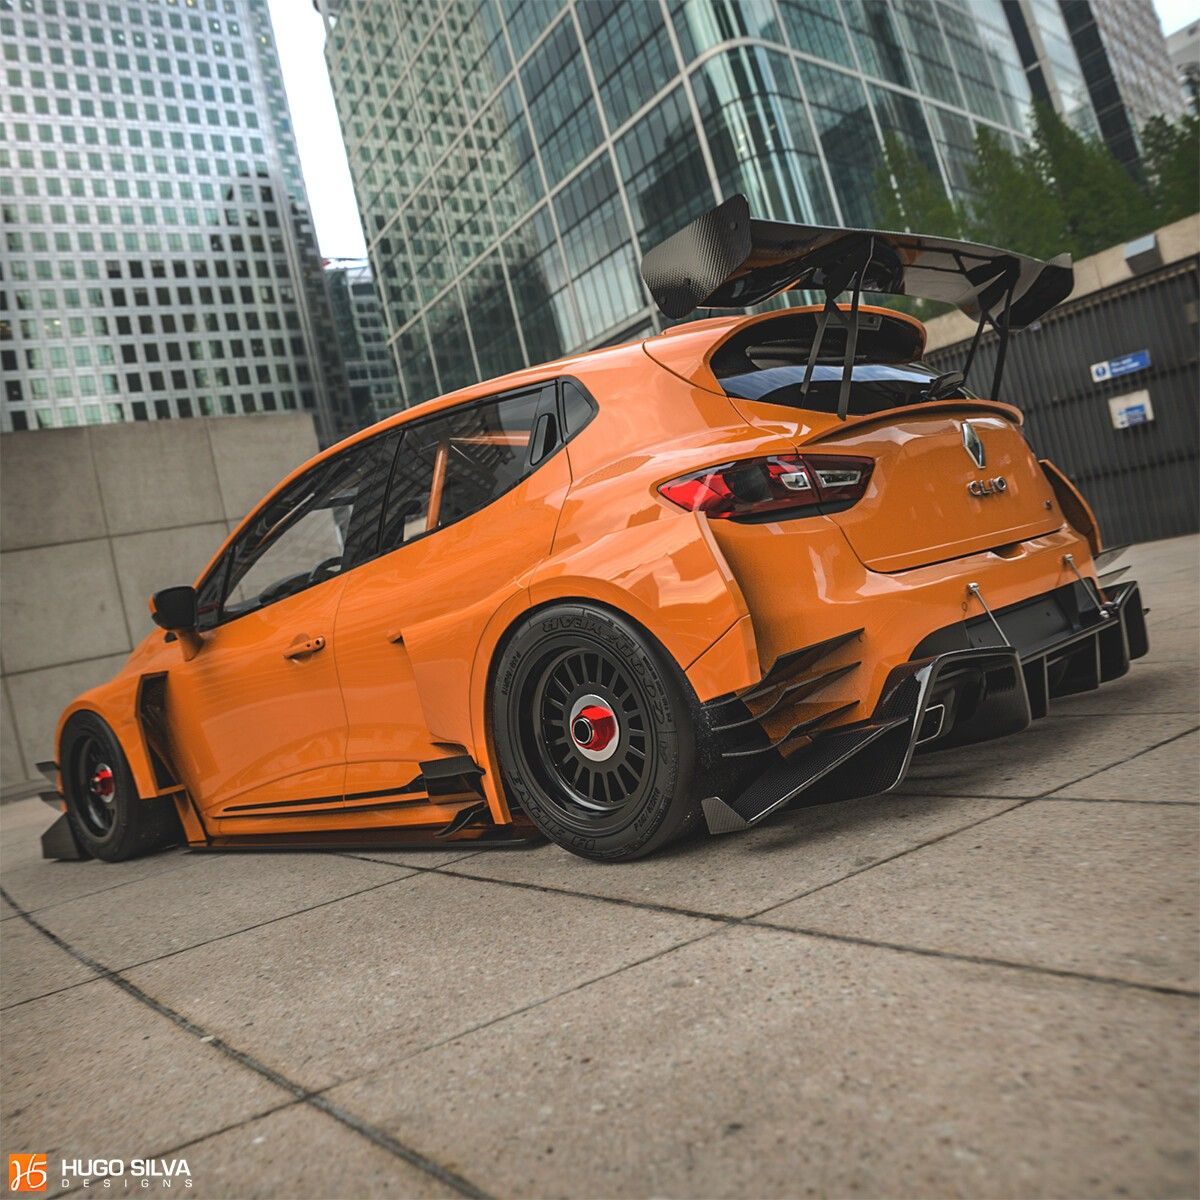 Renault Race Car: Old Renault Clio RS Race Car With Widebody Kit Looks Angry